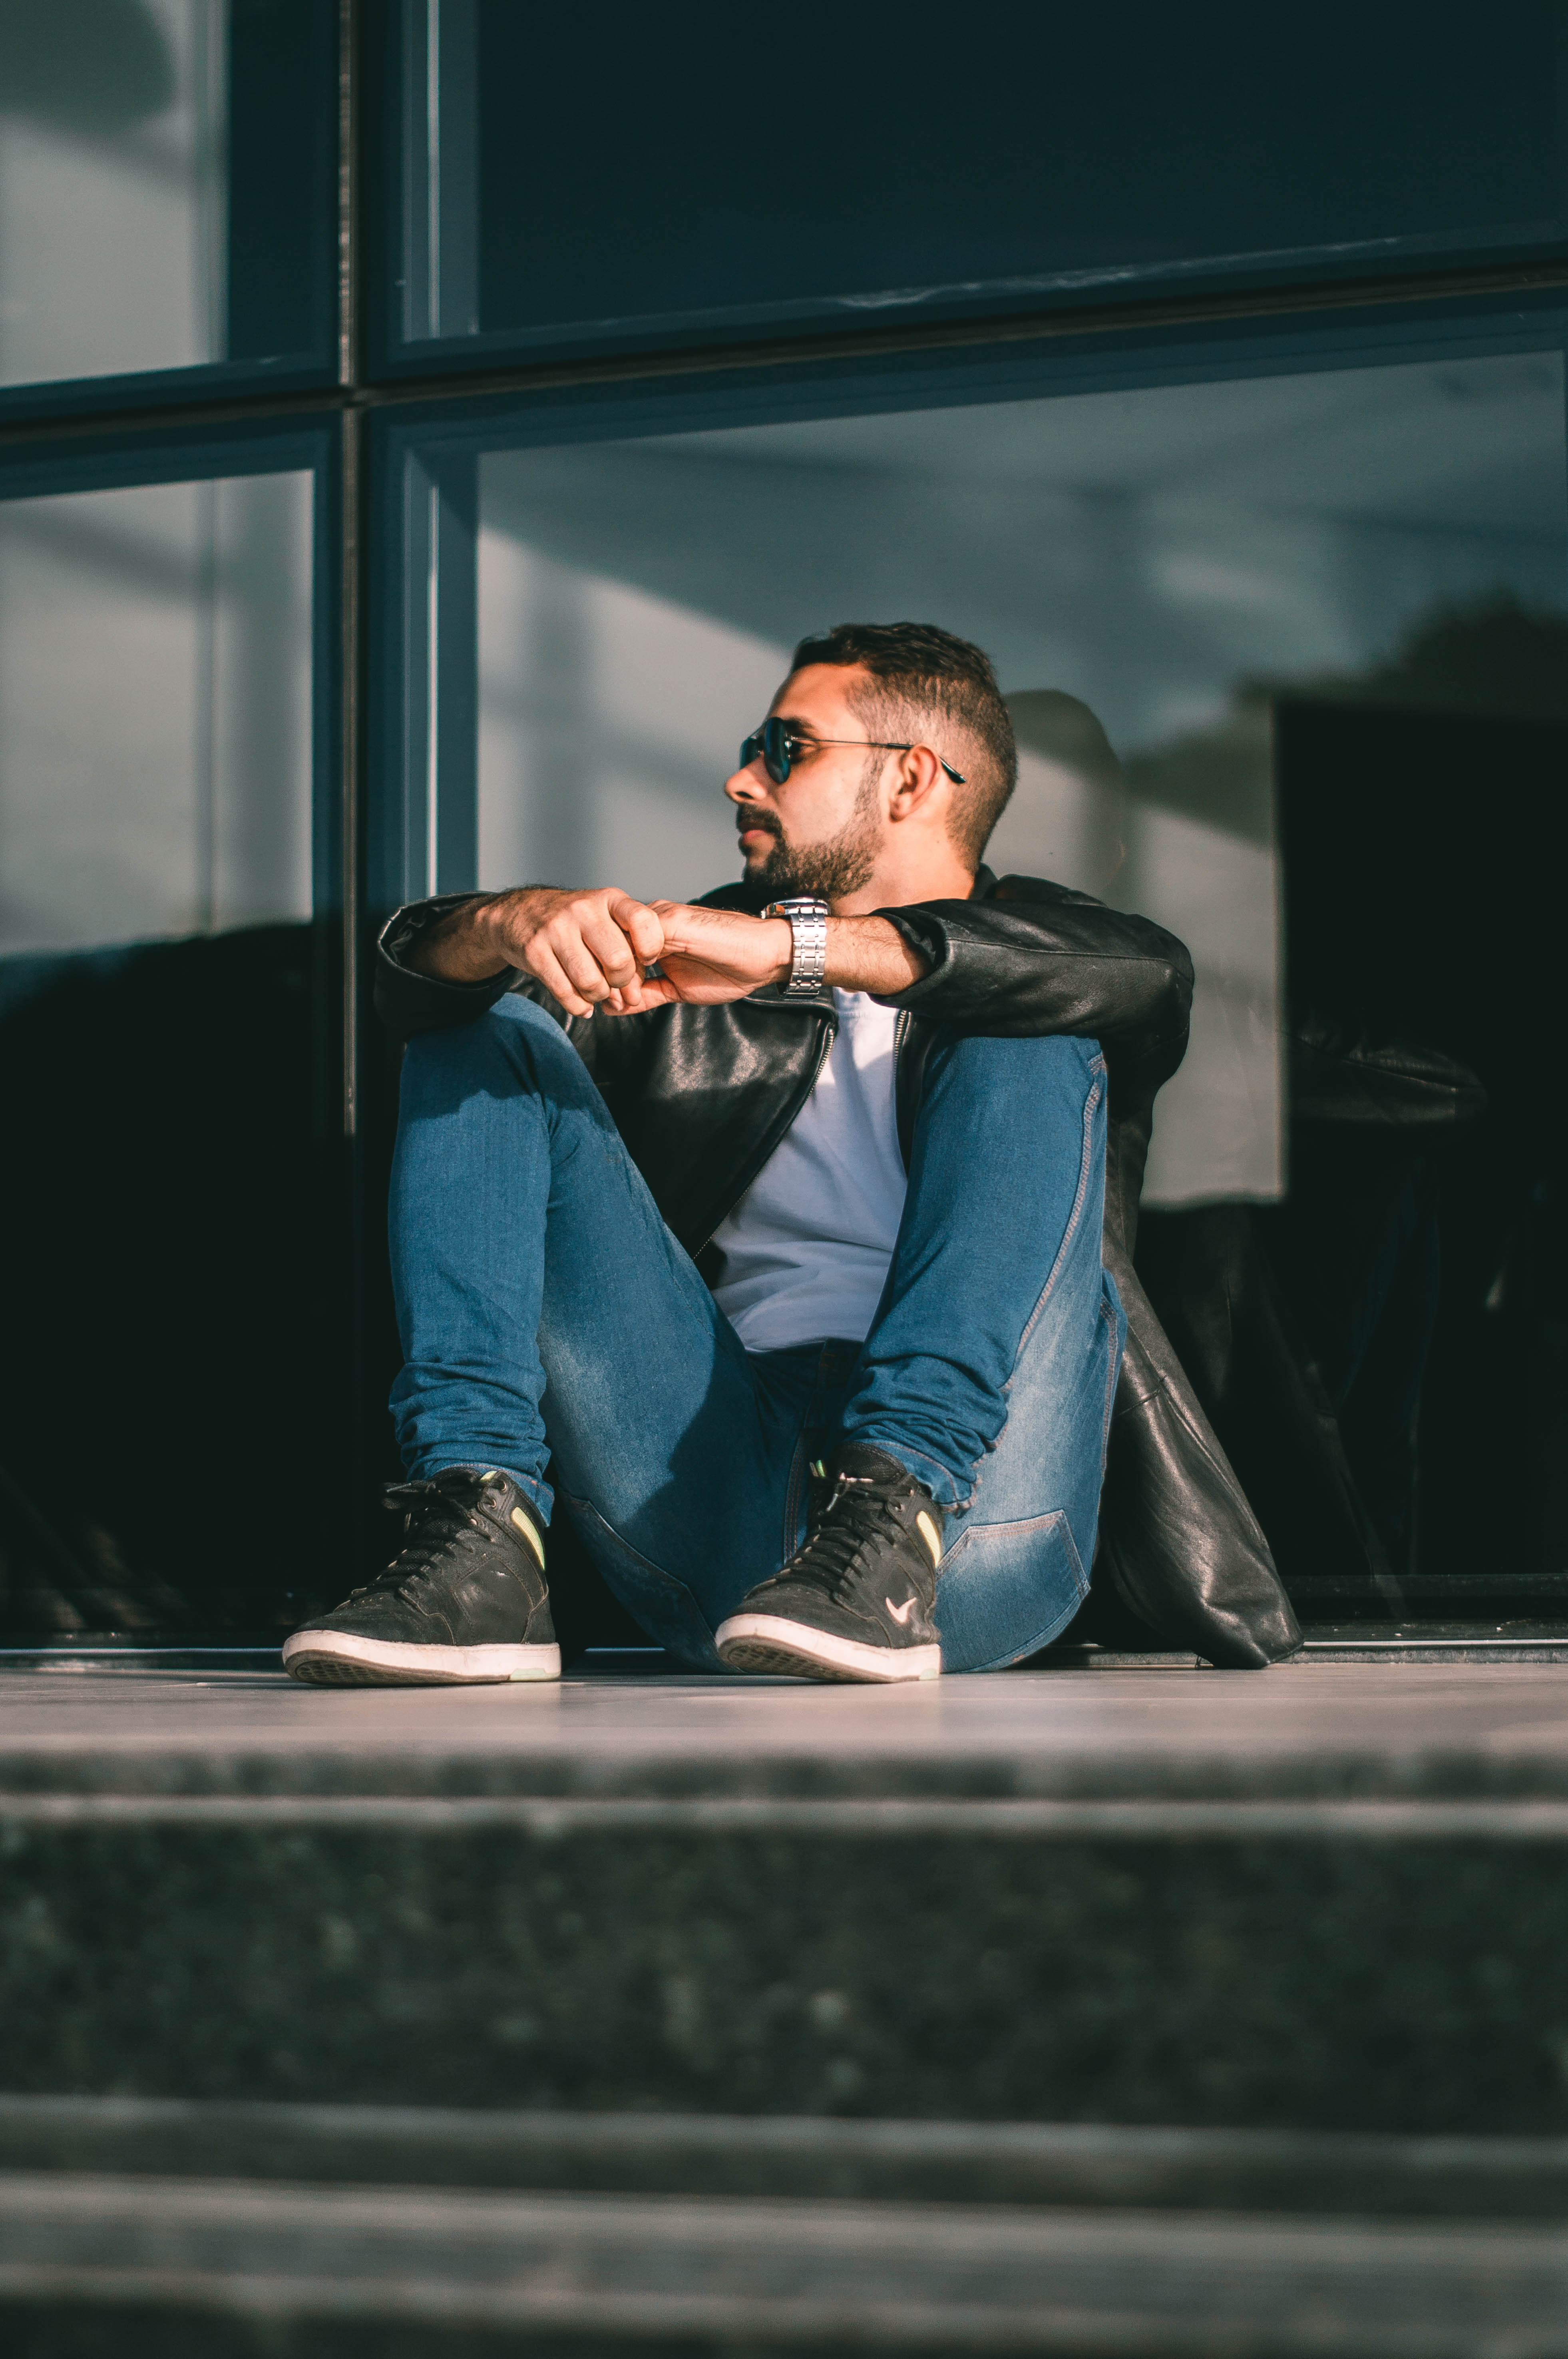 man sitting on floor leaning on glass wall inside room